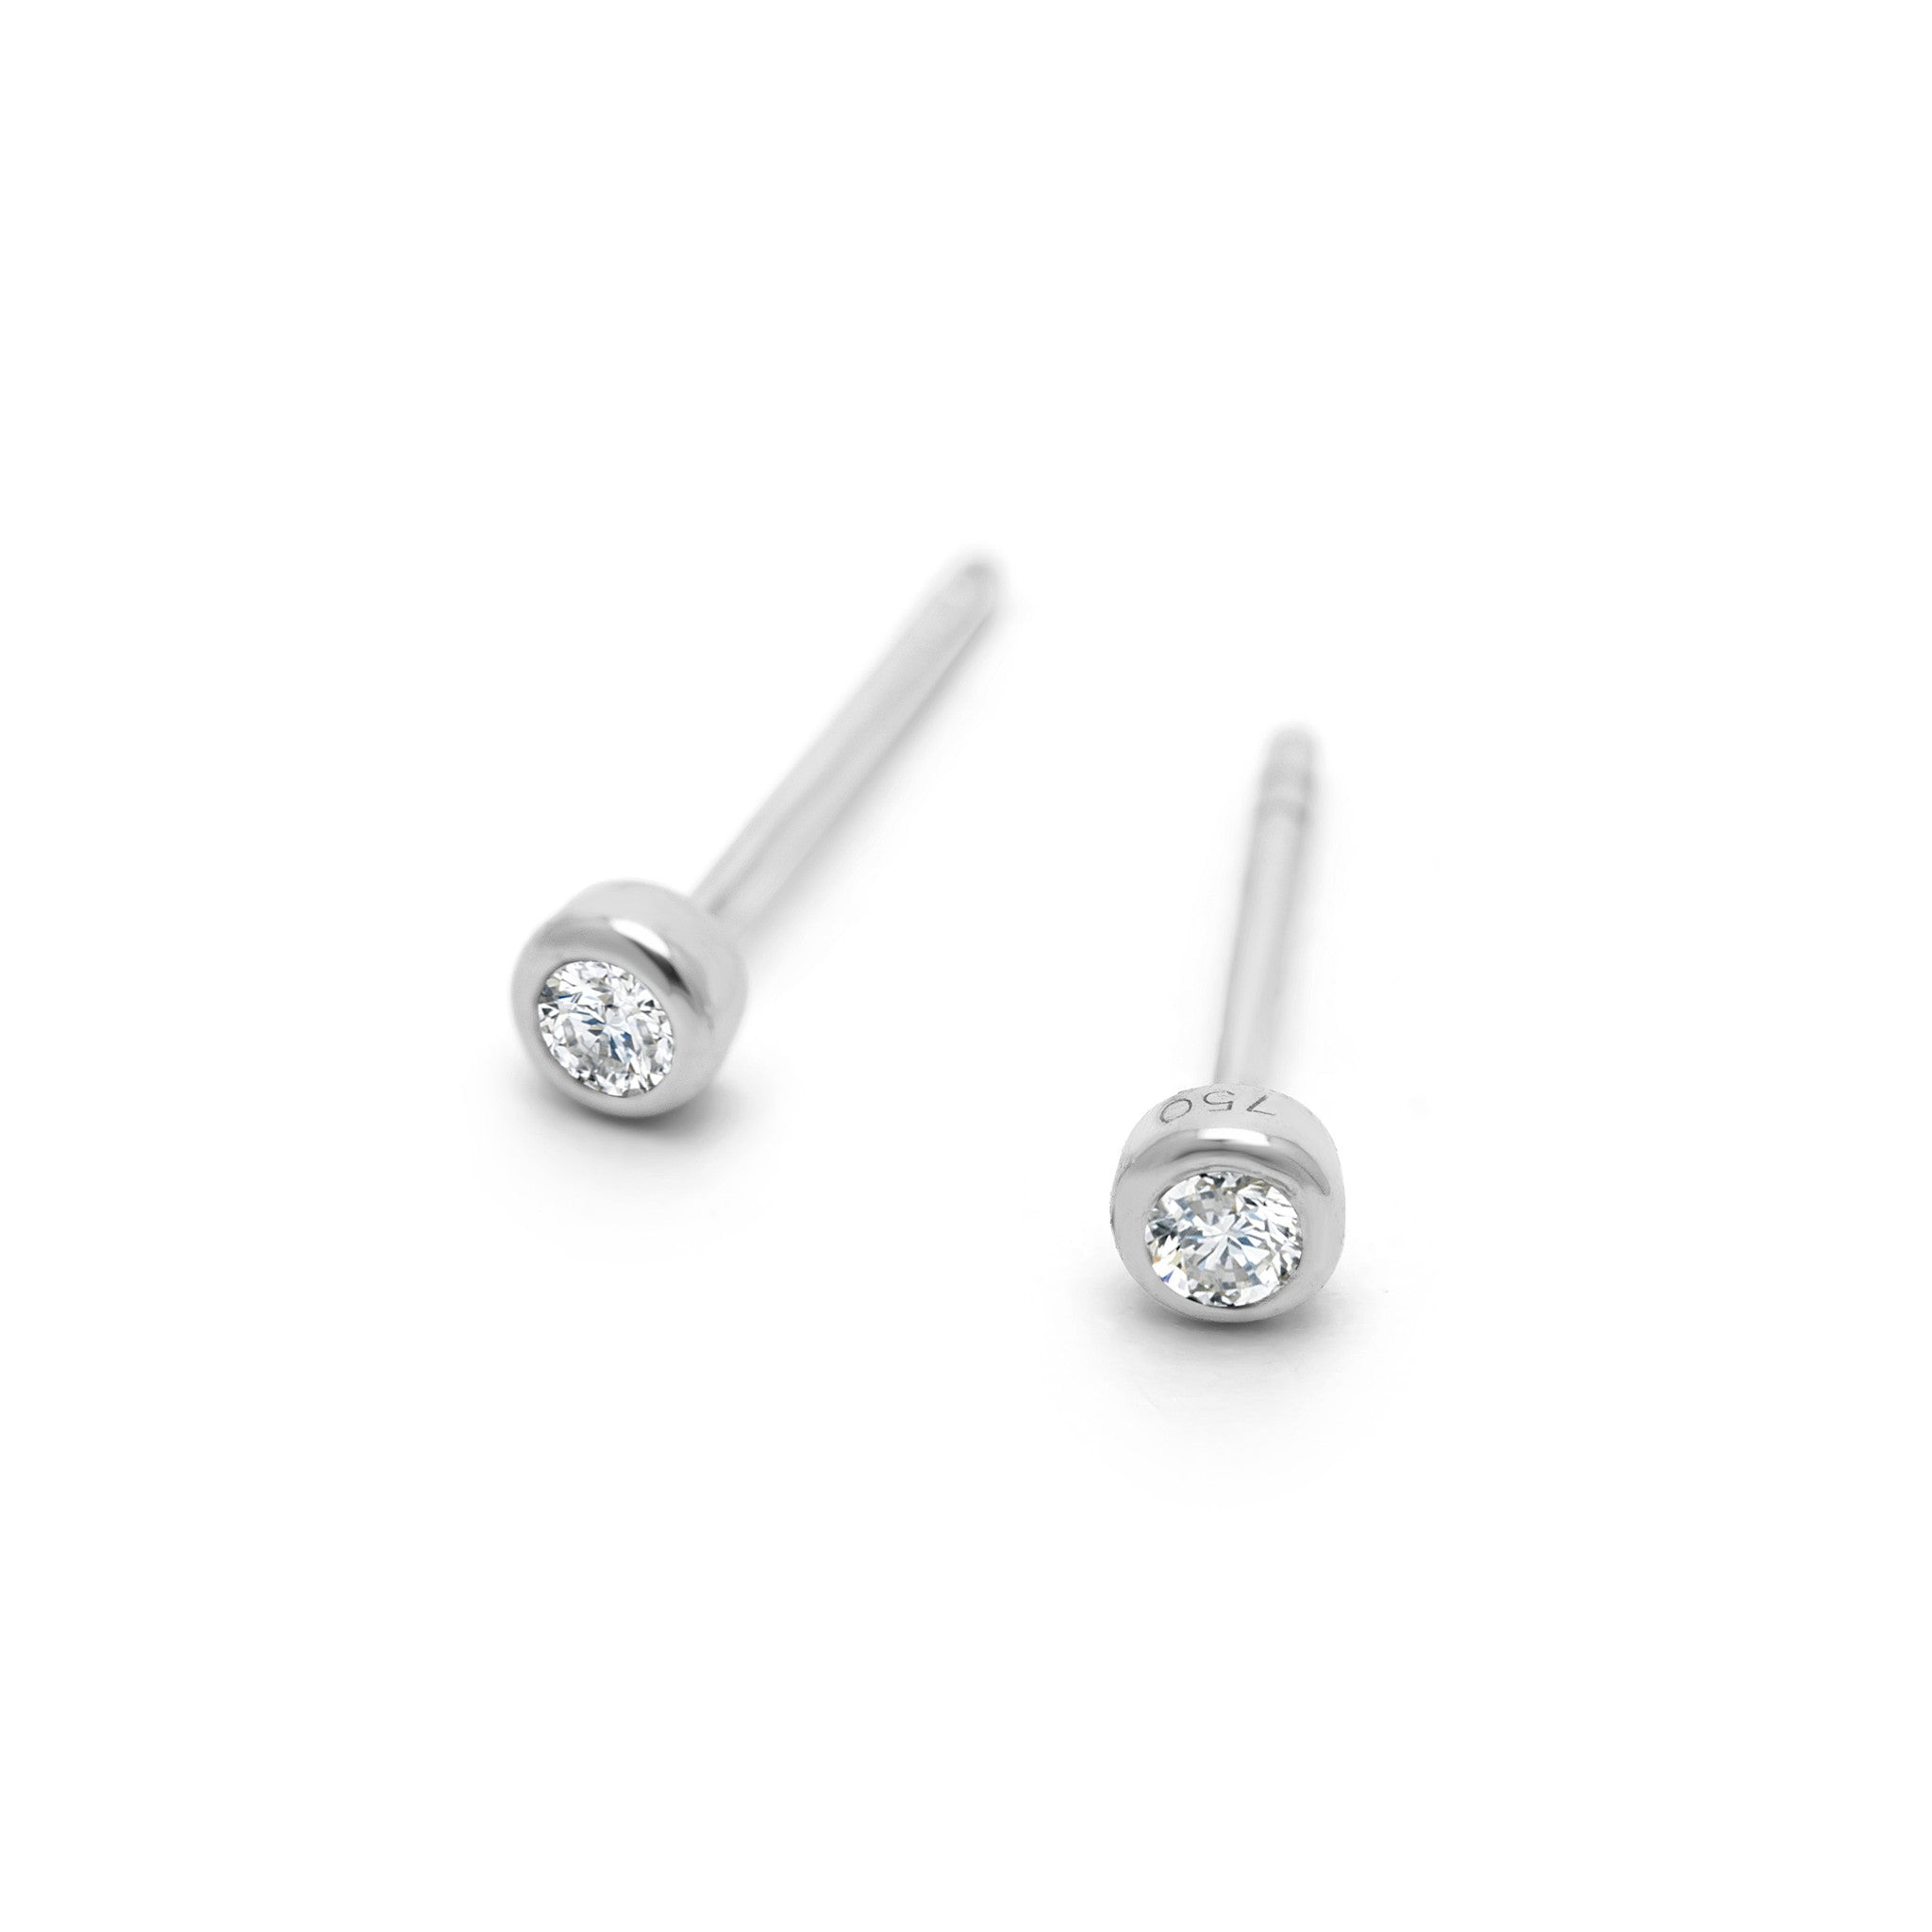 com carat miabella t solitaire w stud princess walmart diamond sterling cut silver earrings ip